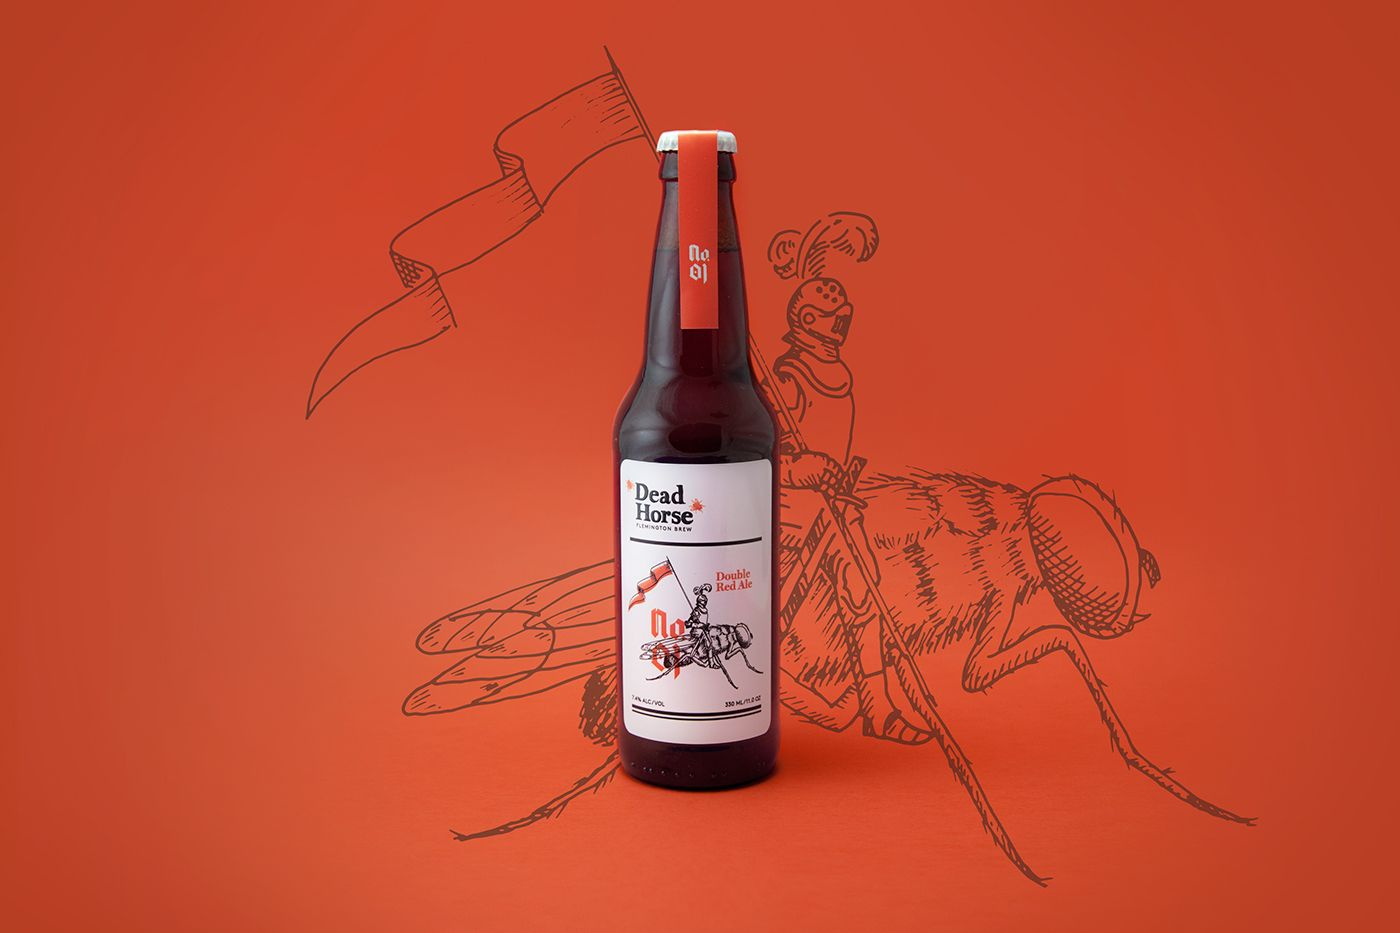 Dead Horse Beer On Behance Etiquetas De Vino Botellas Vinos